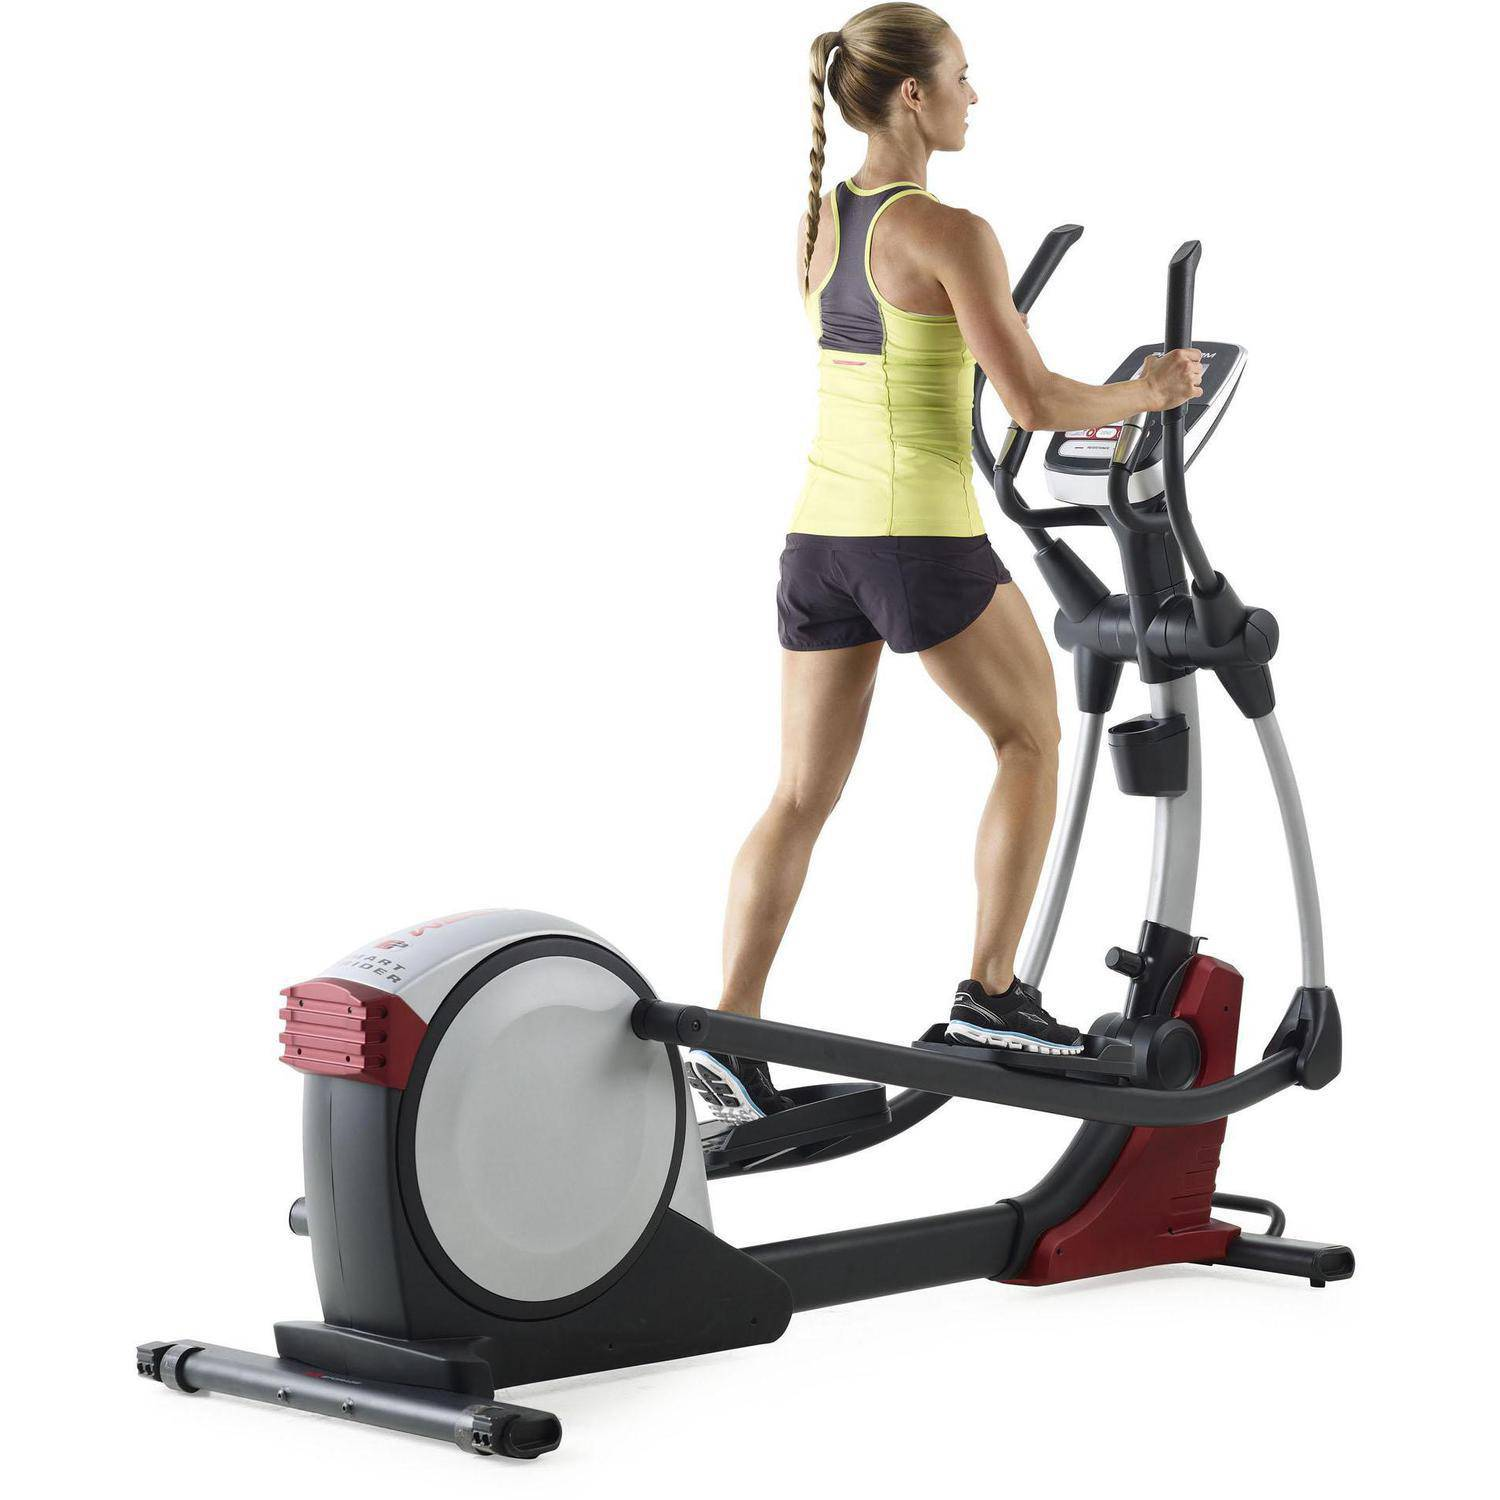 ProForm Smart Strider Elliptical with Apple iPod/MP3 Input